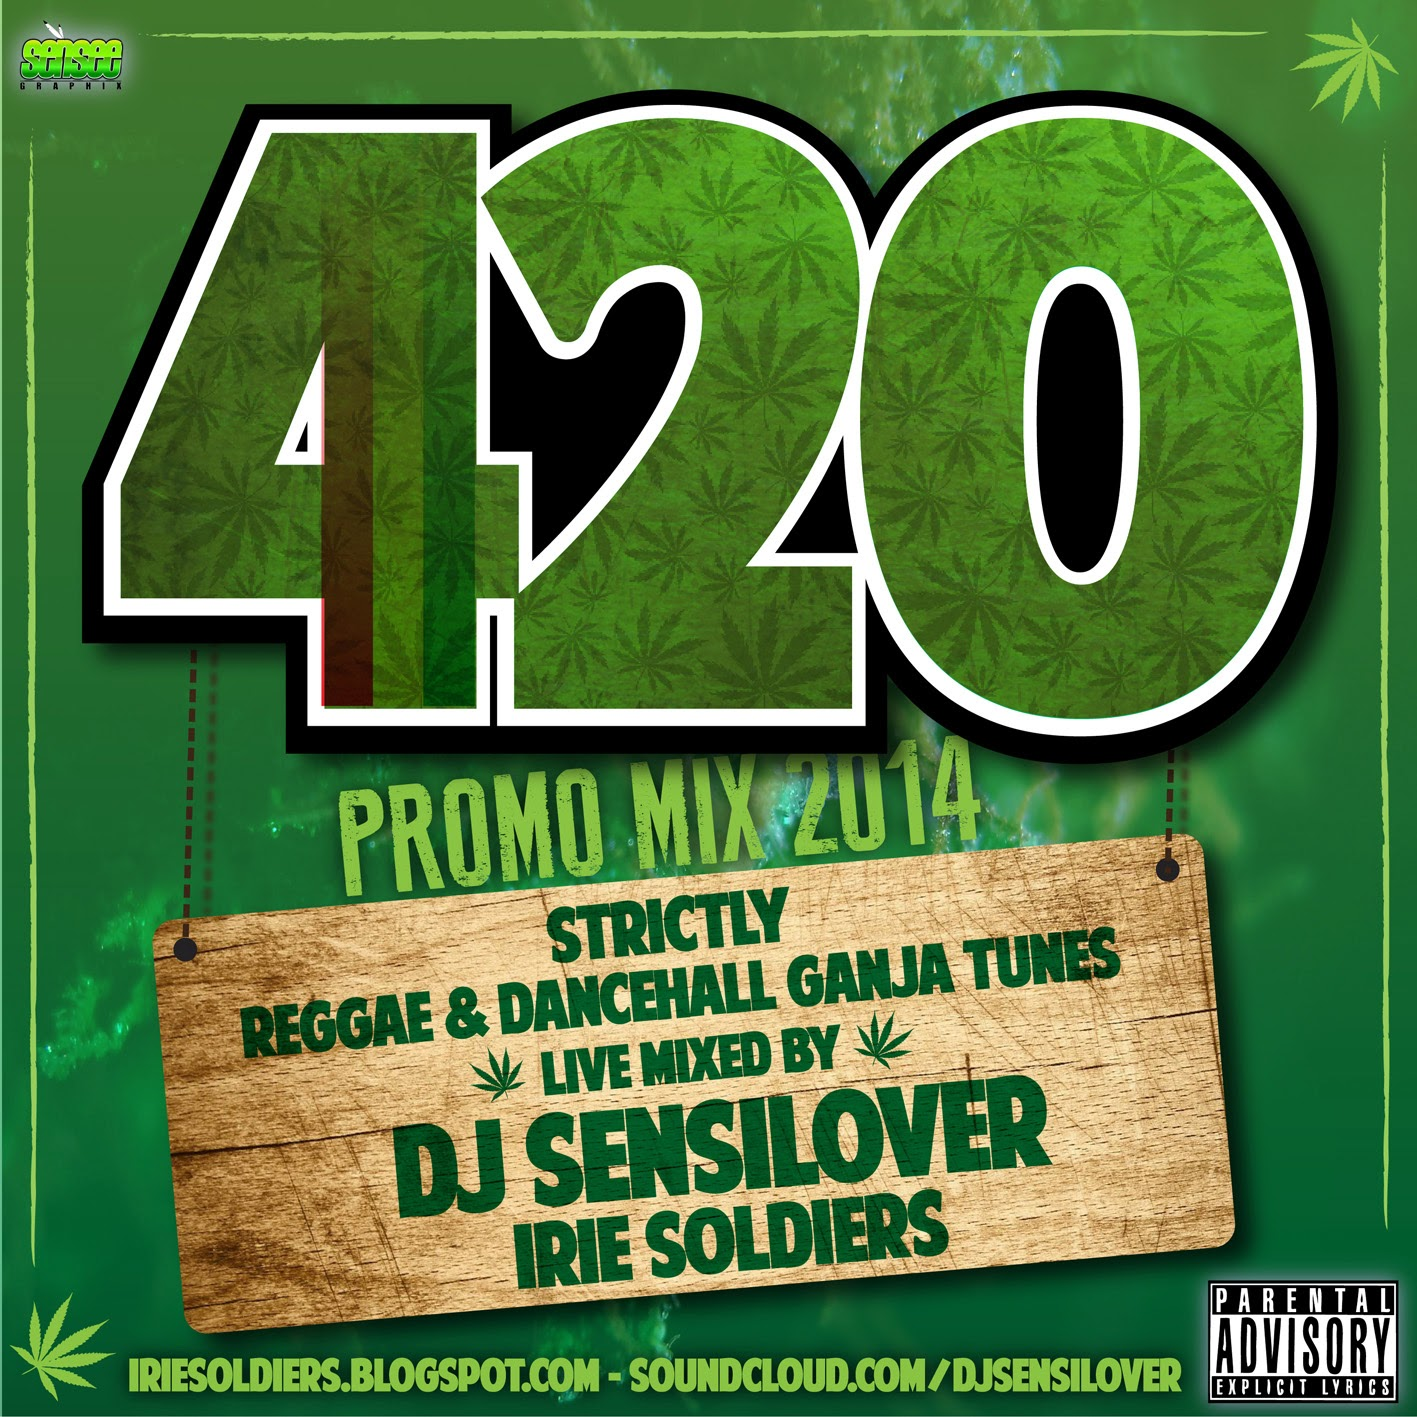 420 PROMO MIX 2014 - DJ SENSILOVER (IRIE SOLDIERS) | IRIE SOLDIERS